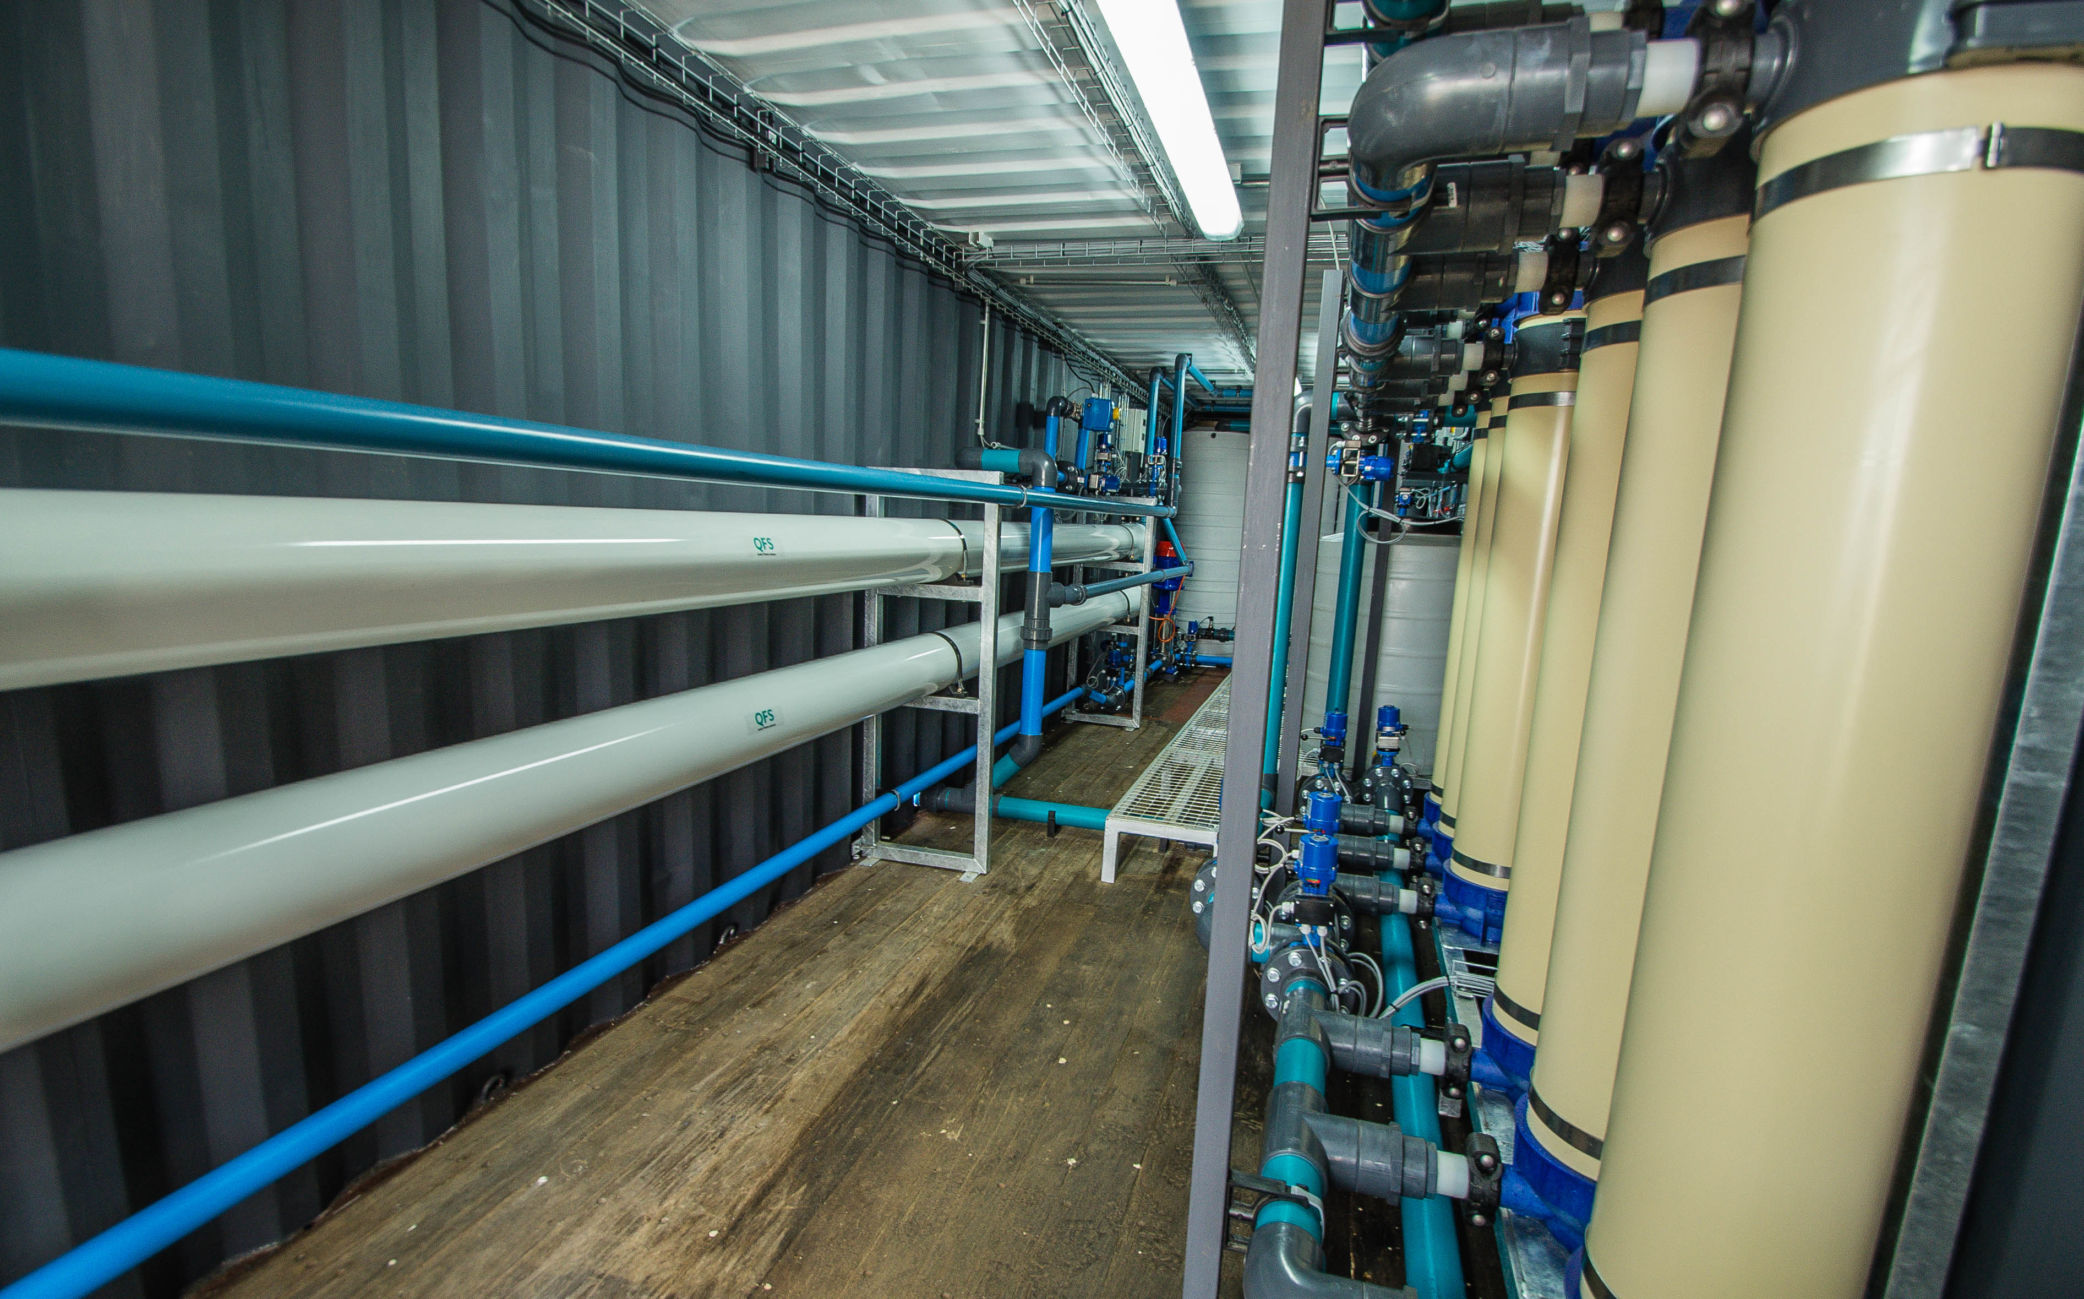 Containerized water filtration plant for Leeu Gamka